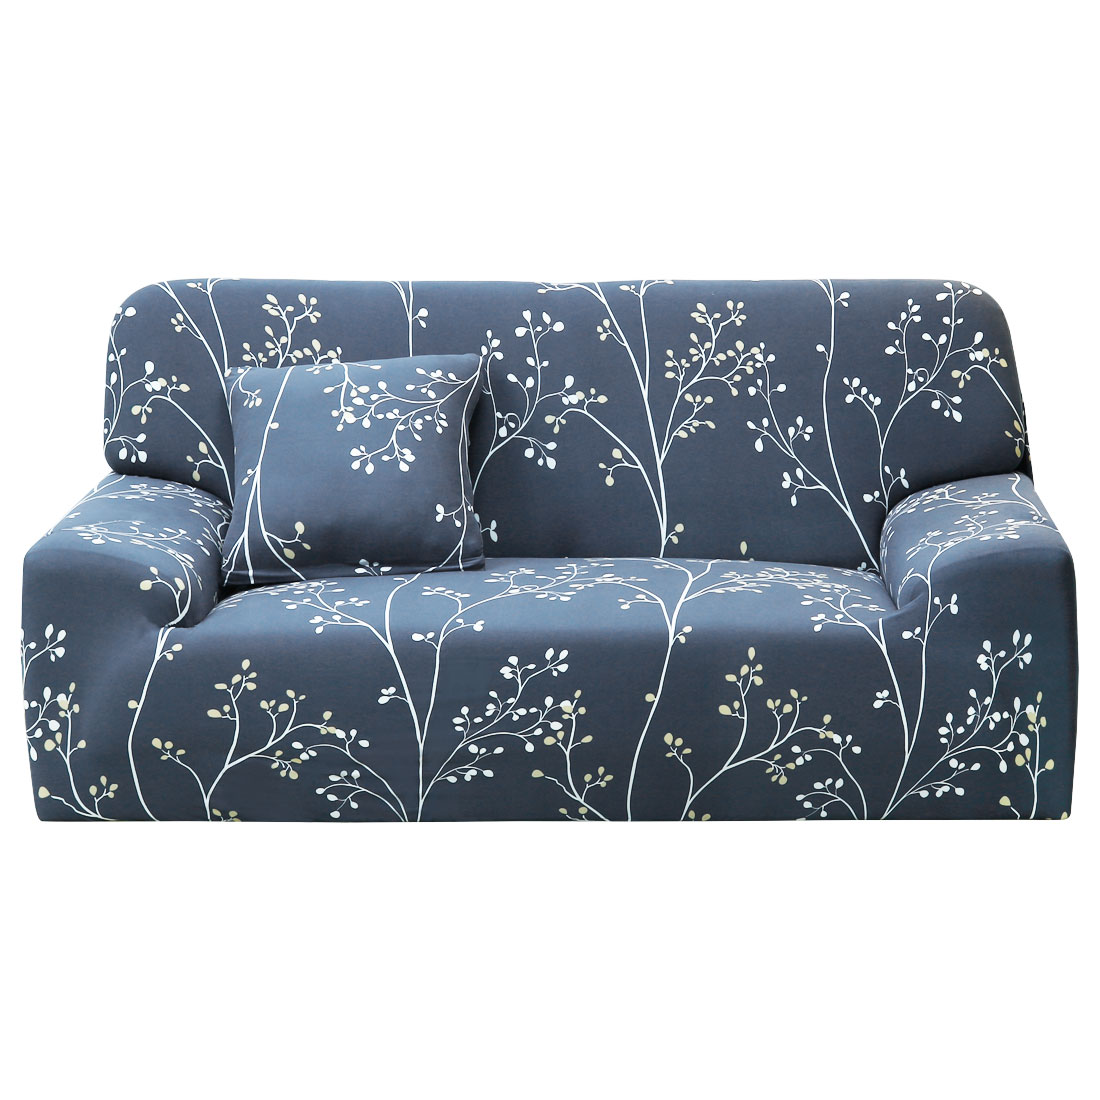 Chair Sofa Cover 1 2 3 4 Seater Cover Full Cover Slipcover #3 (74 x 90 Inch)